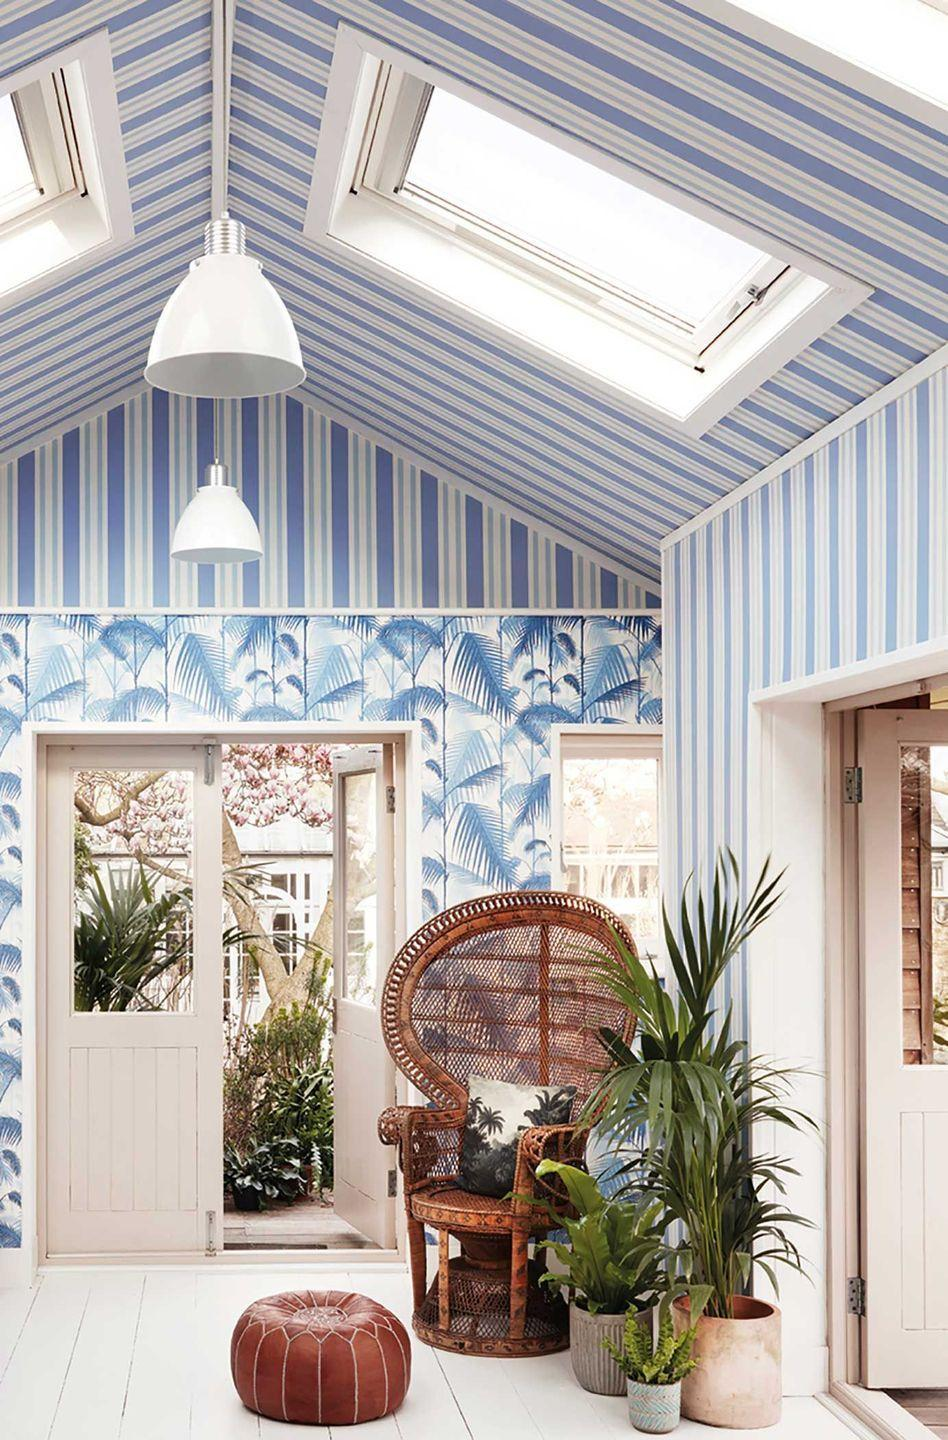 """<p>Often given over to interesting feature lights, or simply painted white, your ceilings are an ideal spot to play with pattern and colour. Even using contrasting wallpaper to the rest of the room, like the neat stripes offset by the botanical print used here can make for an interesting focal point. </p><p>Pictured: <a href=""""https://www.cole-and-son.com/en/products/polo-stripe?v=1323"""" rel=""""nofollow noopener"""" target=""""_blank"""" data-ylk=""""slk:Polo Stripe"""" class=""""link rapid-noclick-resp"""">Polo Stripe</a>, Cole & Son</p>"""